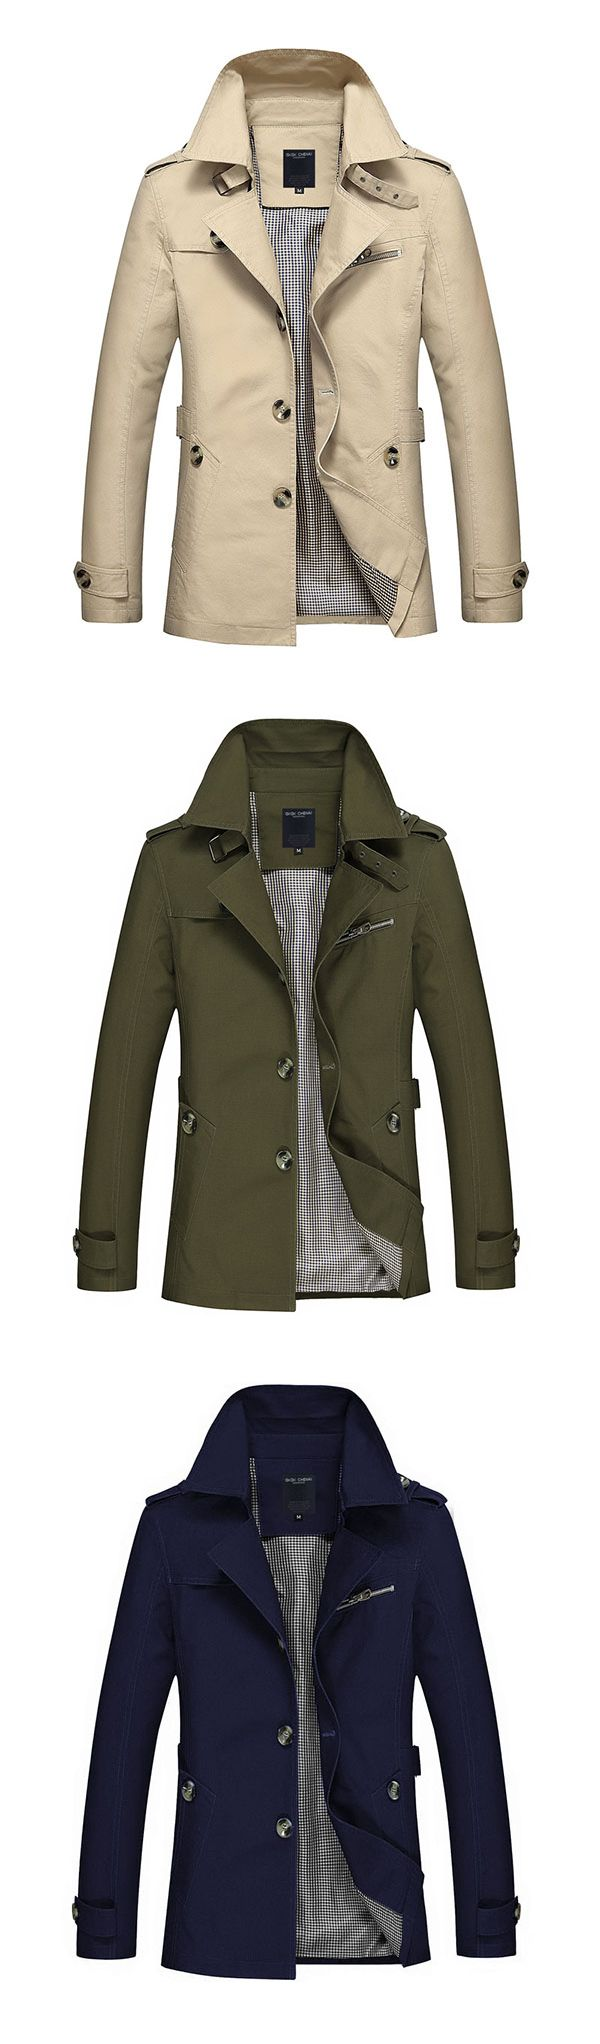 US$31.22 (49% OFF) Fall&Winter Outfit Business&Casual Trench Coat / Washed Cotton Turndown Collar Jacket for Men